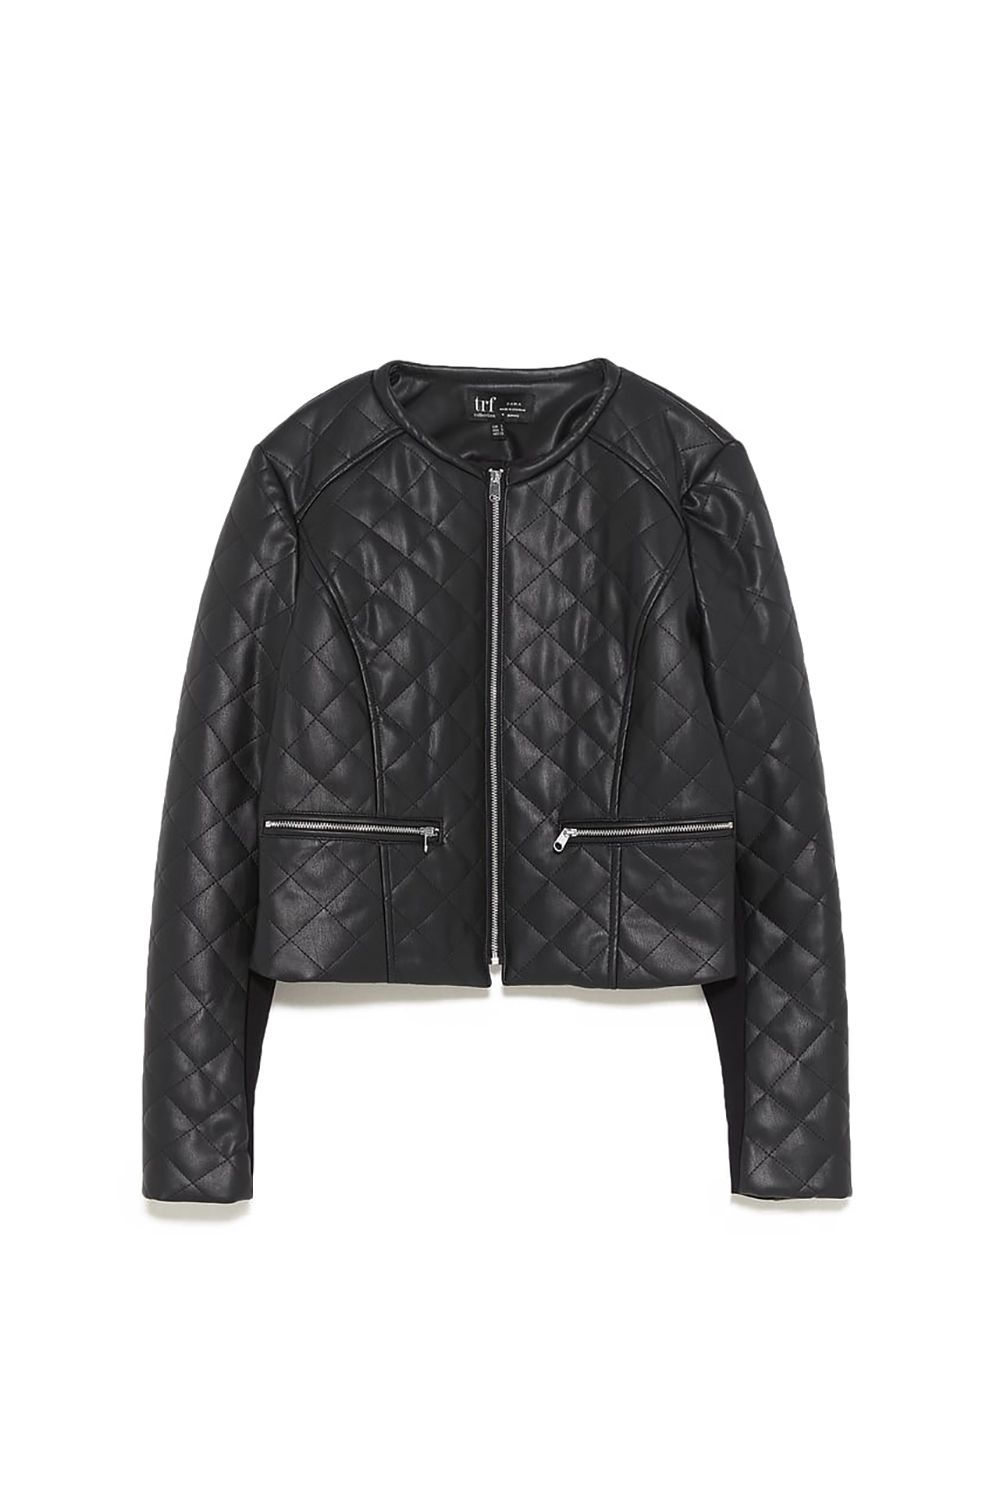 a78e352e19ee3 18 Best Leather Jackets for Women 2018 - Affordable Leather Jackets That  Will Never Go Out of Style